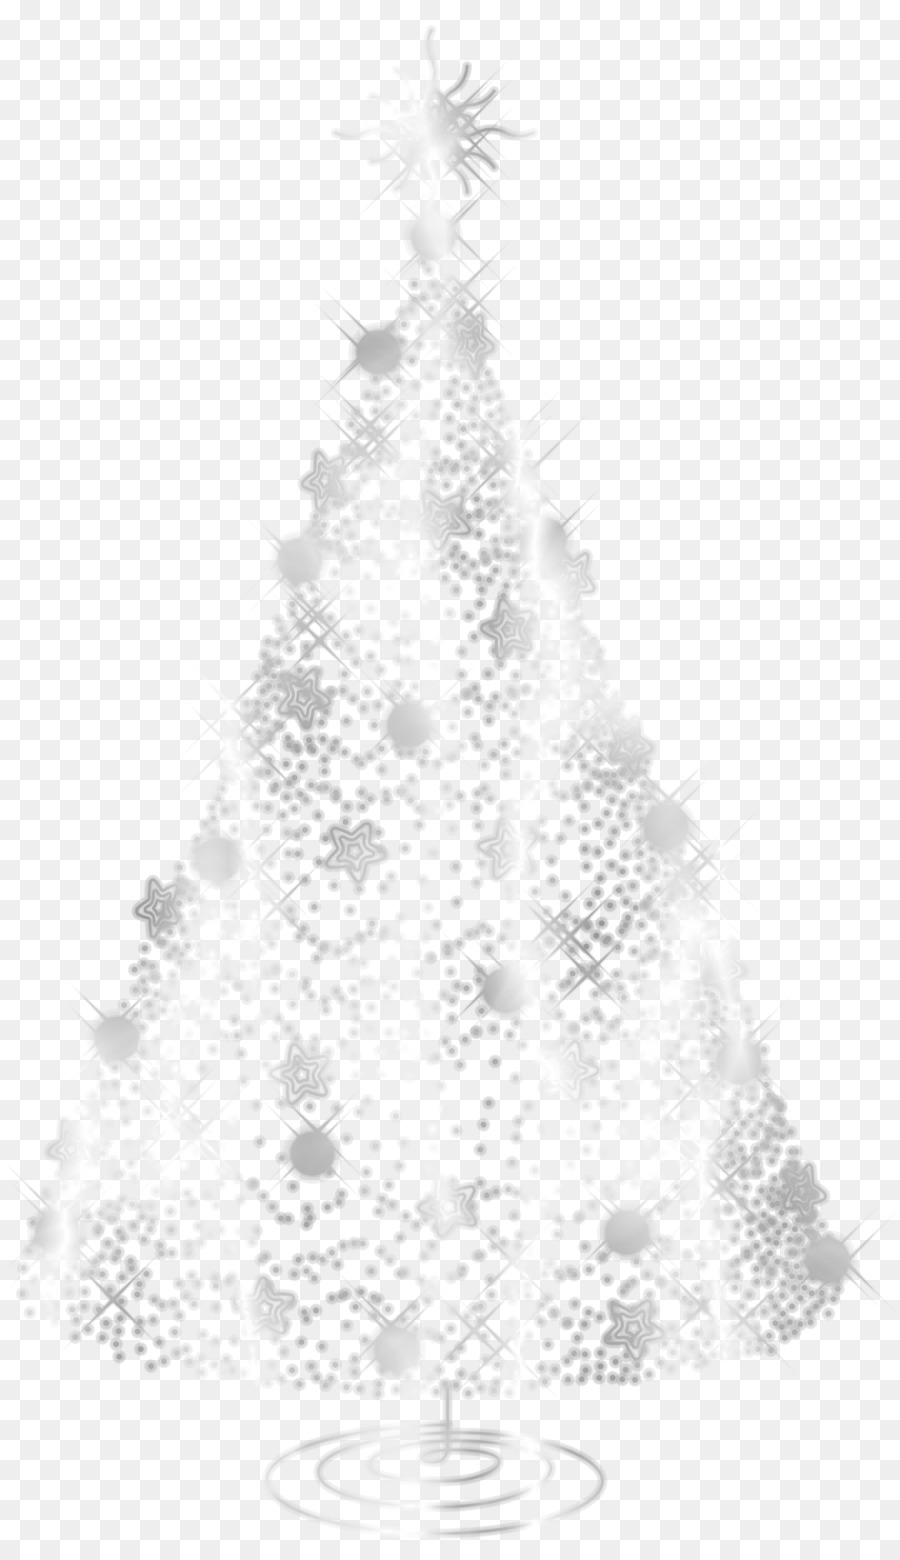 Tree Graphics White Transparent Png Image Clipart Free Download